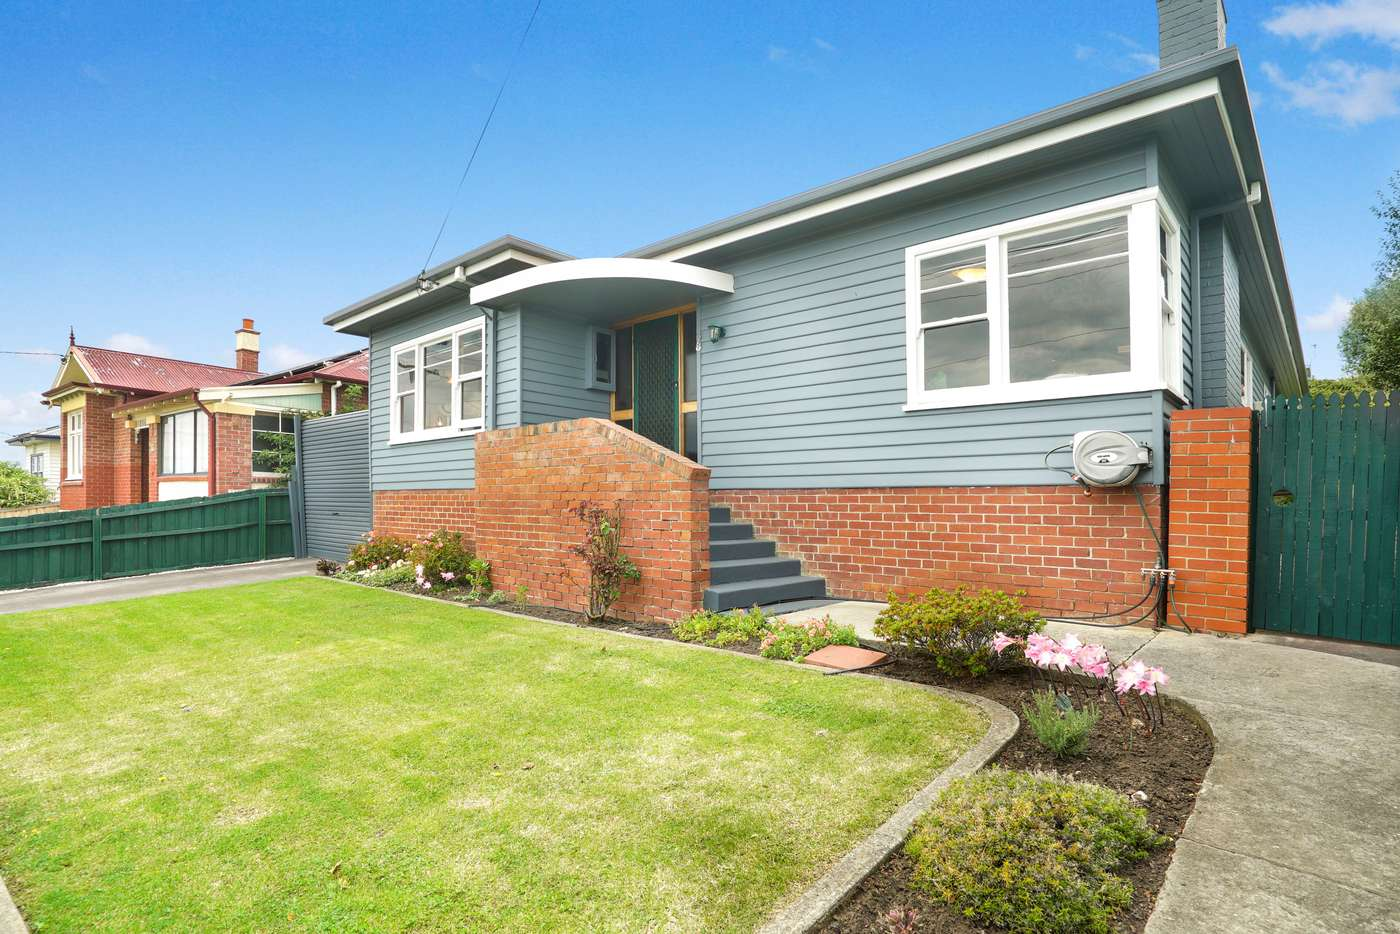 Main view of Homely house listing, 68 Coleman Street, Moonah TAS 7009